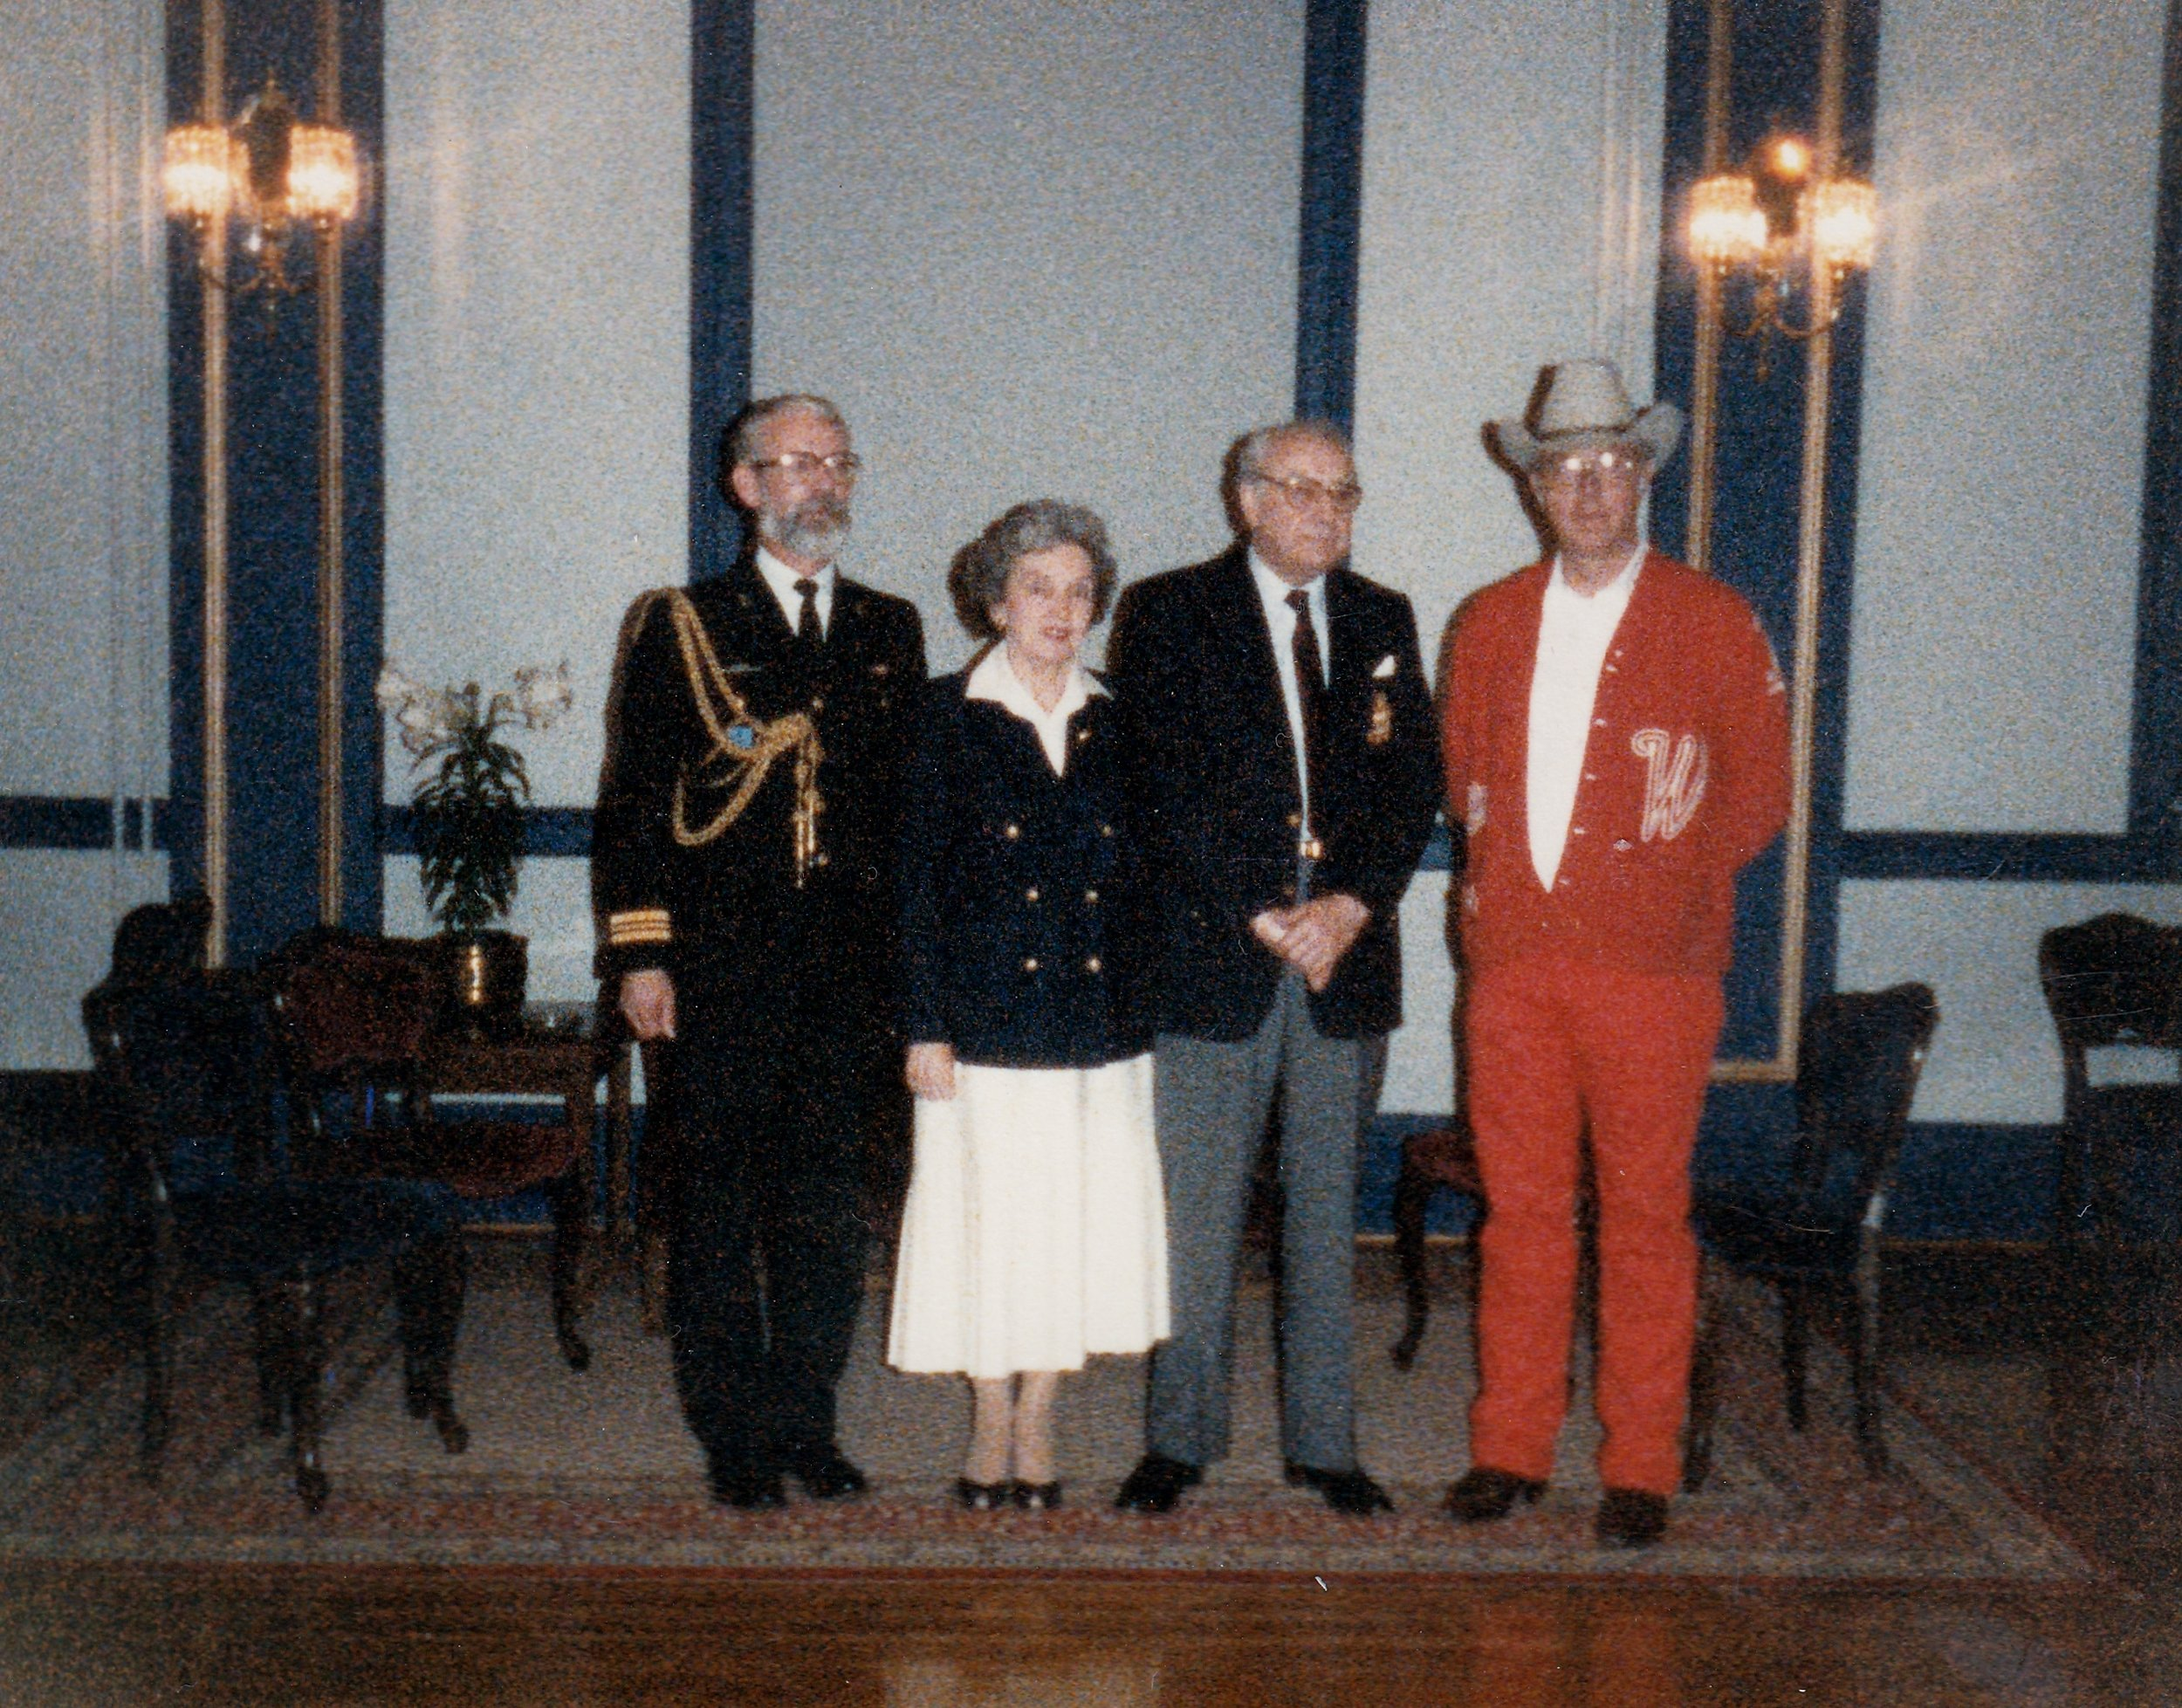 Glen E. Keller, Jr. (right), Director of Westernaires,with Canadian dignitaries, including the  Right Honourable Jeanne Sauvé, Governor General of Canad a, and her husband,  Maurice Sauvé , then Chancellor of the  University of Ottawa in 1986.